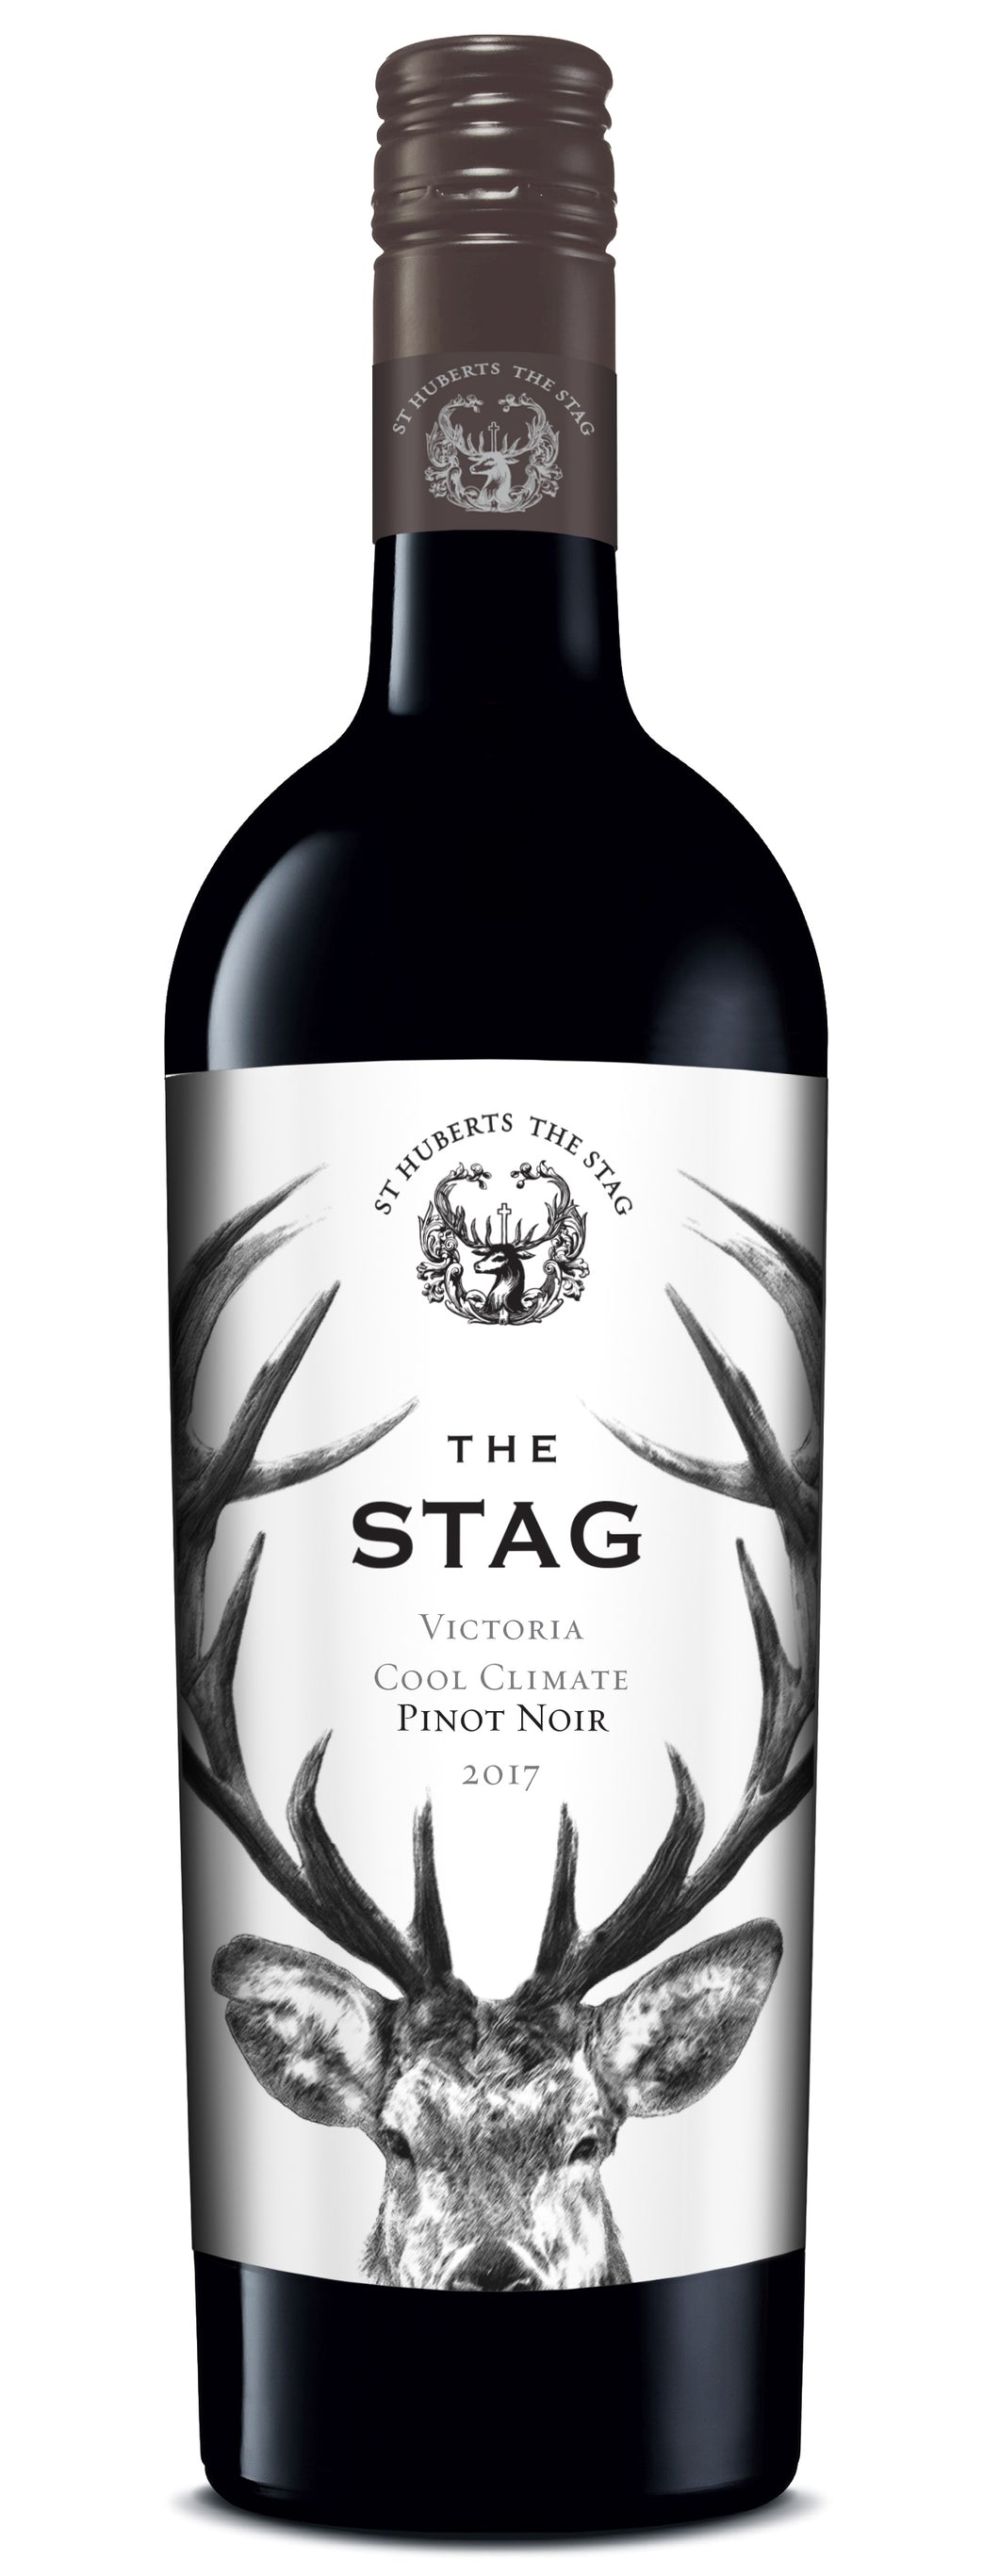 $108.00 per case (6) delivered - ST HUBERTS The Stag Pinot Noir 2019